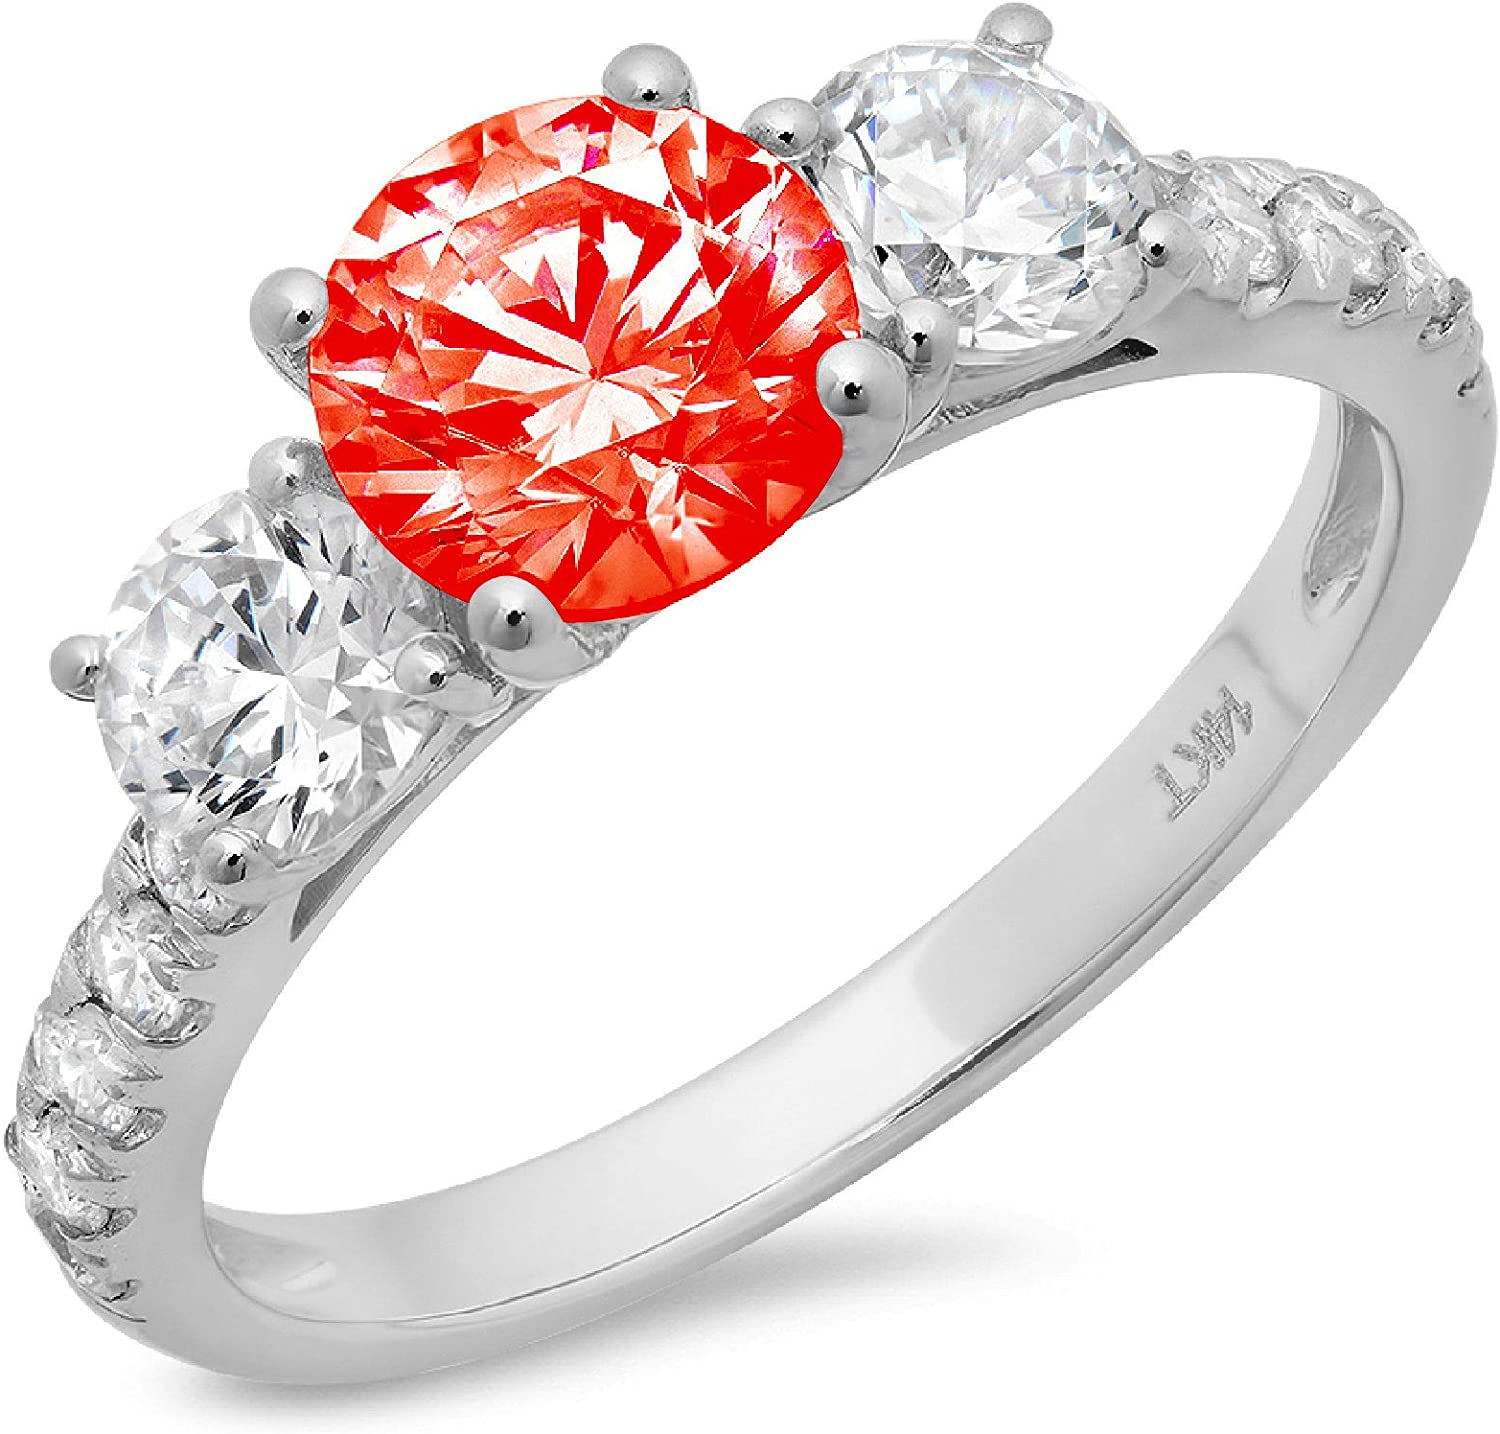 2 ct Brilliant Some reservation Max 70% OFF Round Cut Solitaire stone Flawle Genuine Accent 3